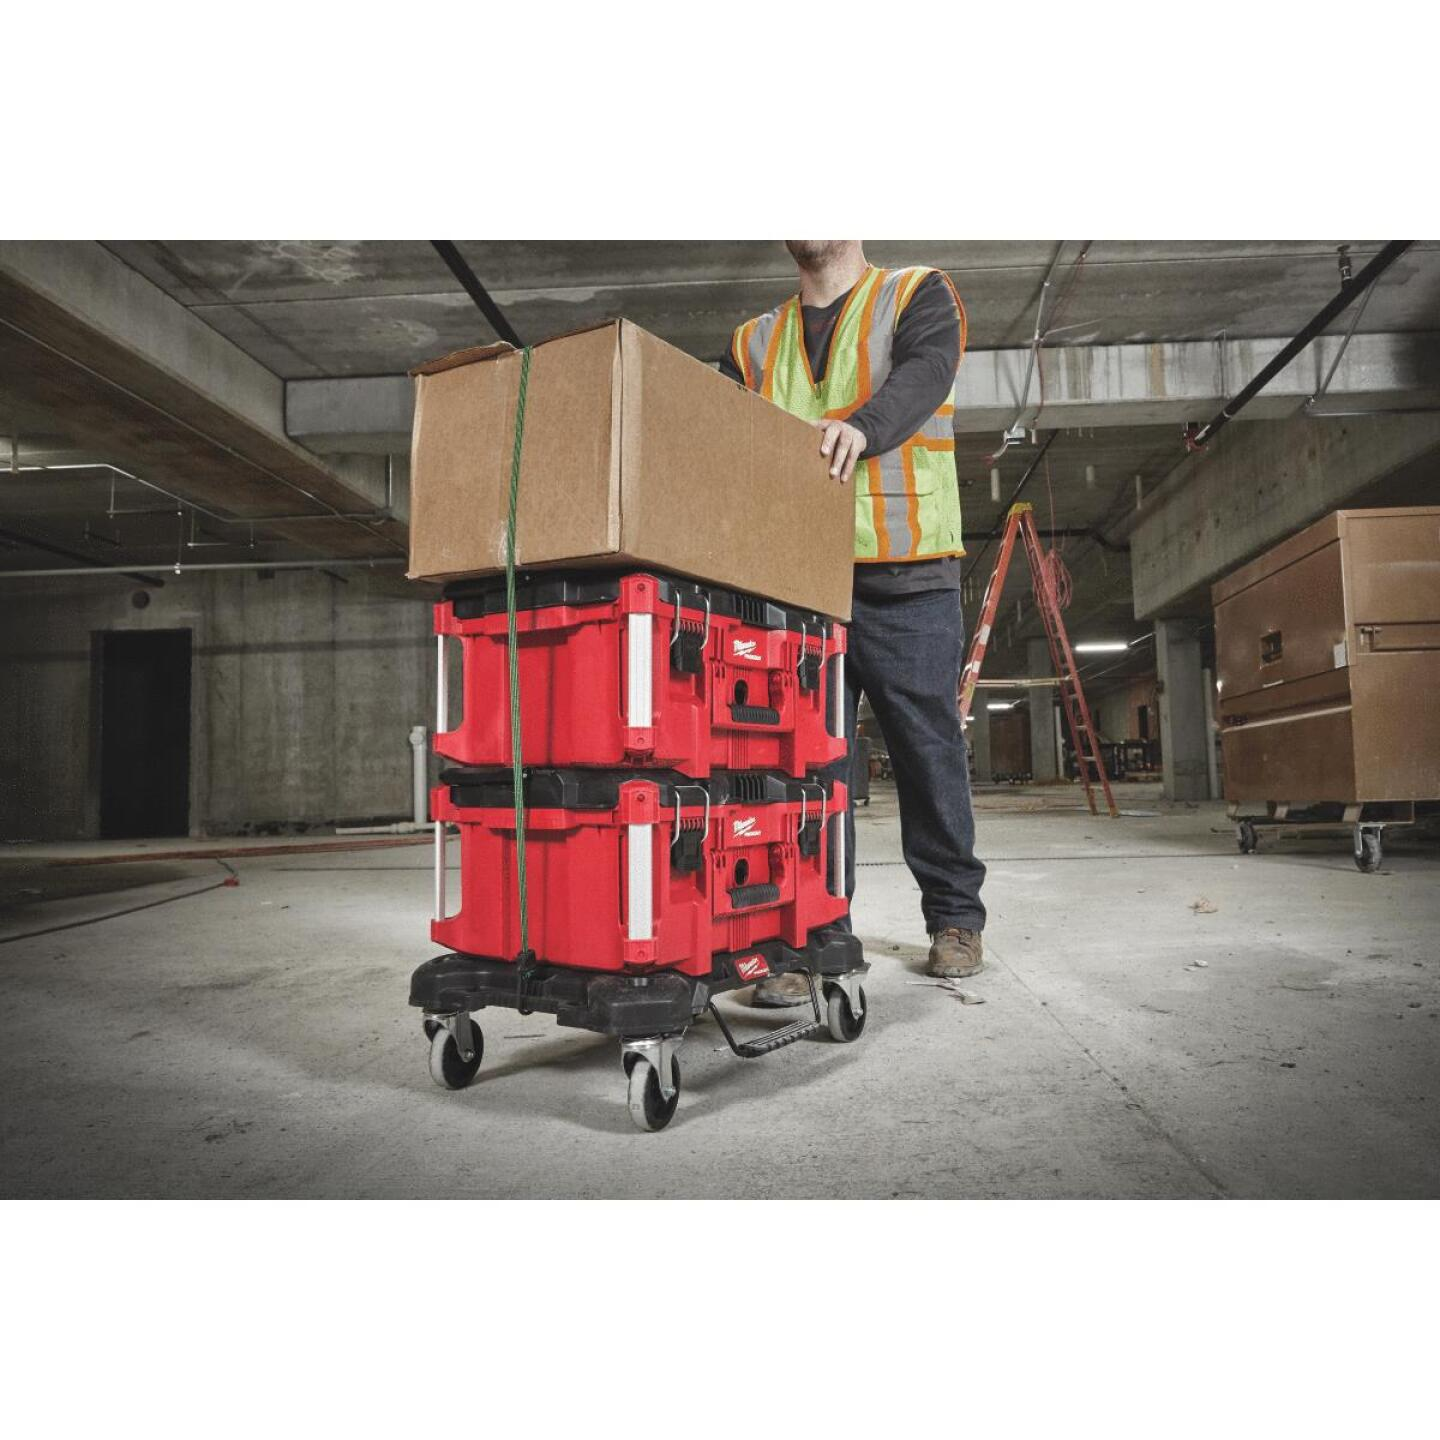 Milwaukee PACKOUT 18.8 In. W x 24.4 In. L Platform Cart, 250 Lb. Capacity Image 2